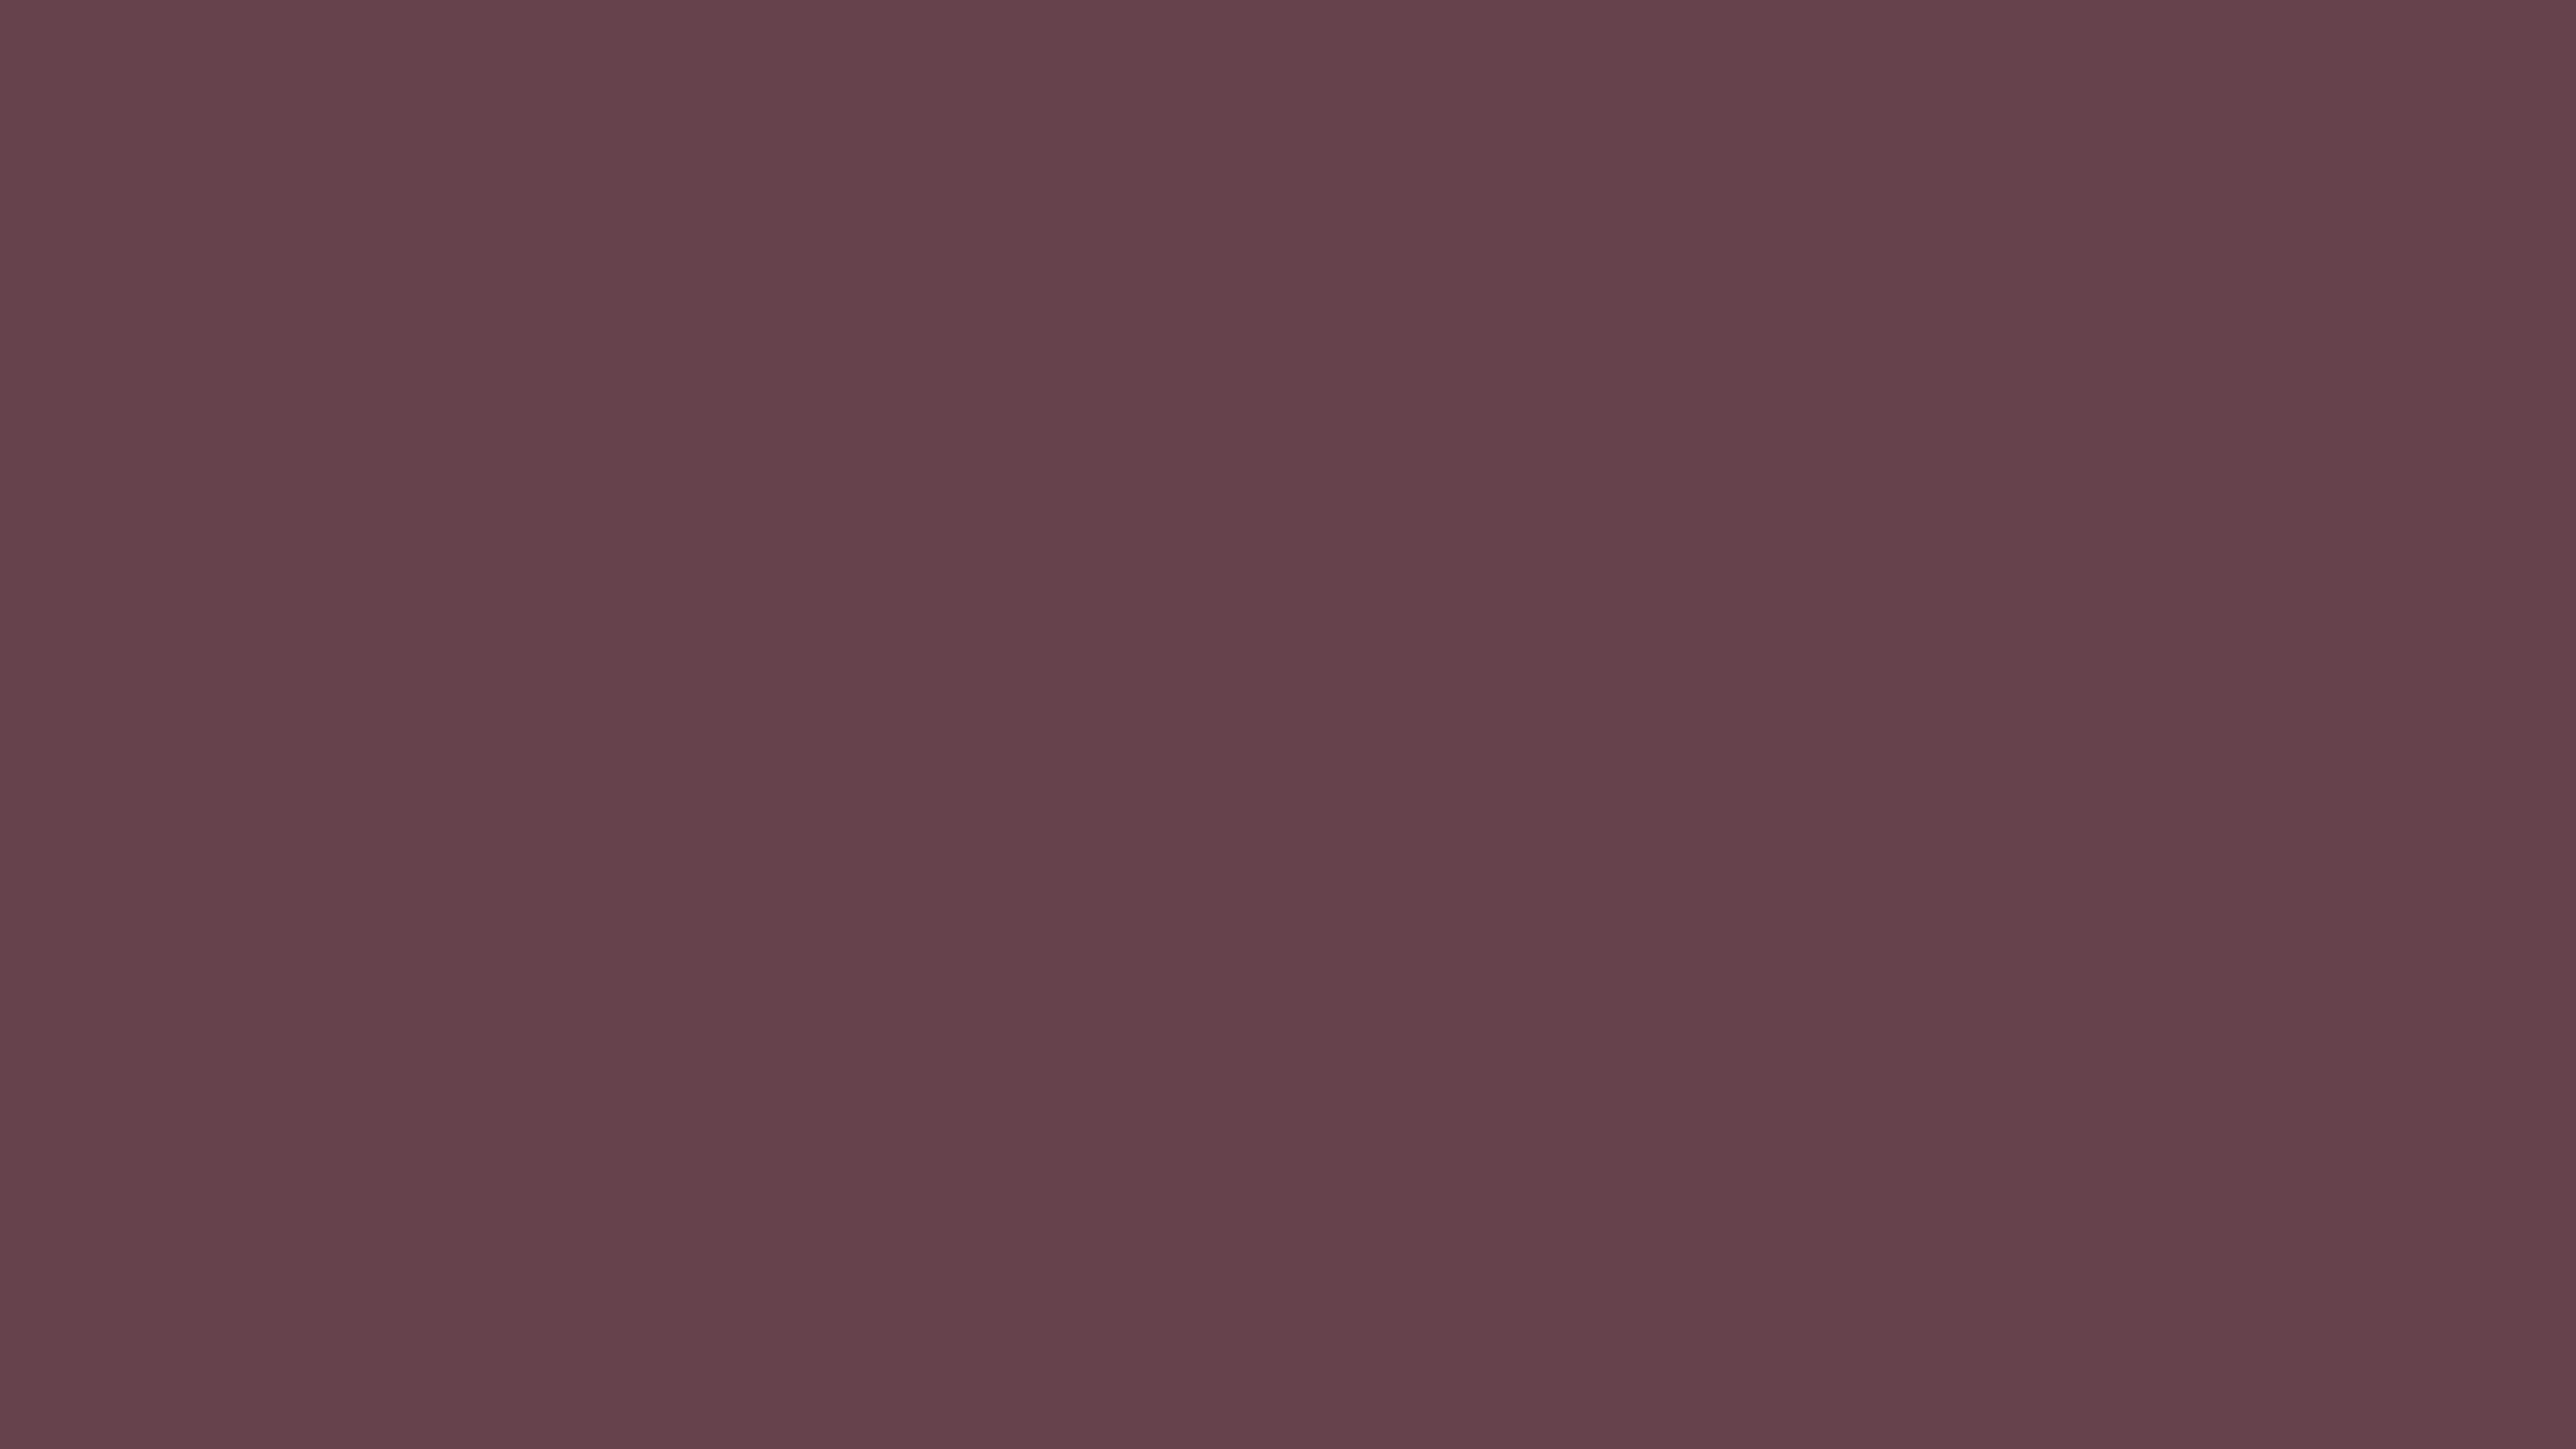 7680x4320 Deep Tuscan Red Solid Color Background